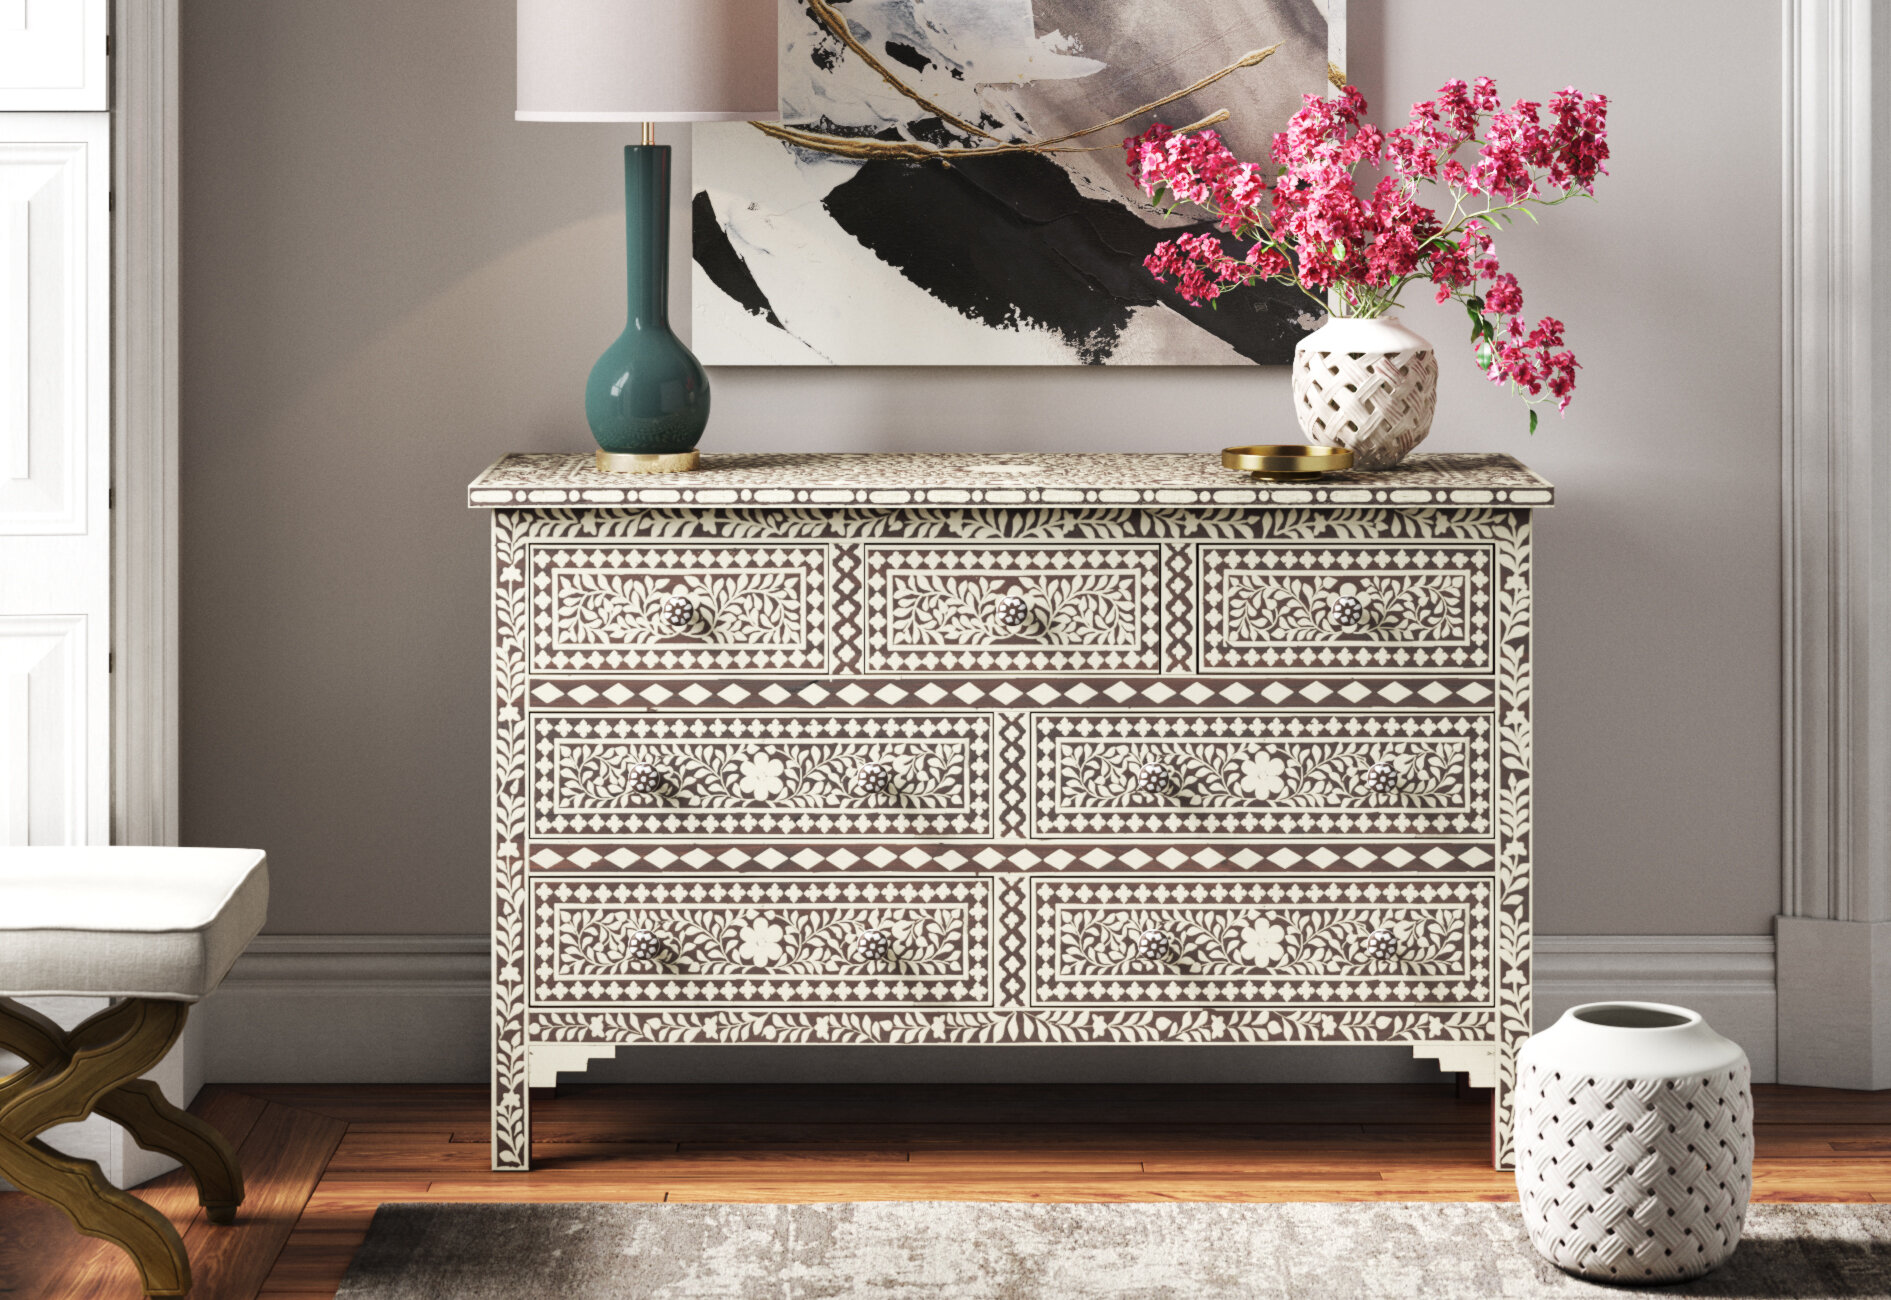 5 Secrets To Styling A Chest Of Drawers Wayfair Co Uk